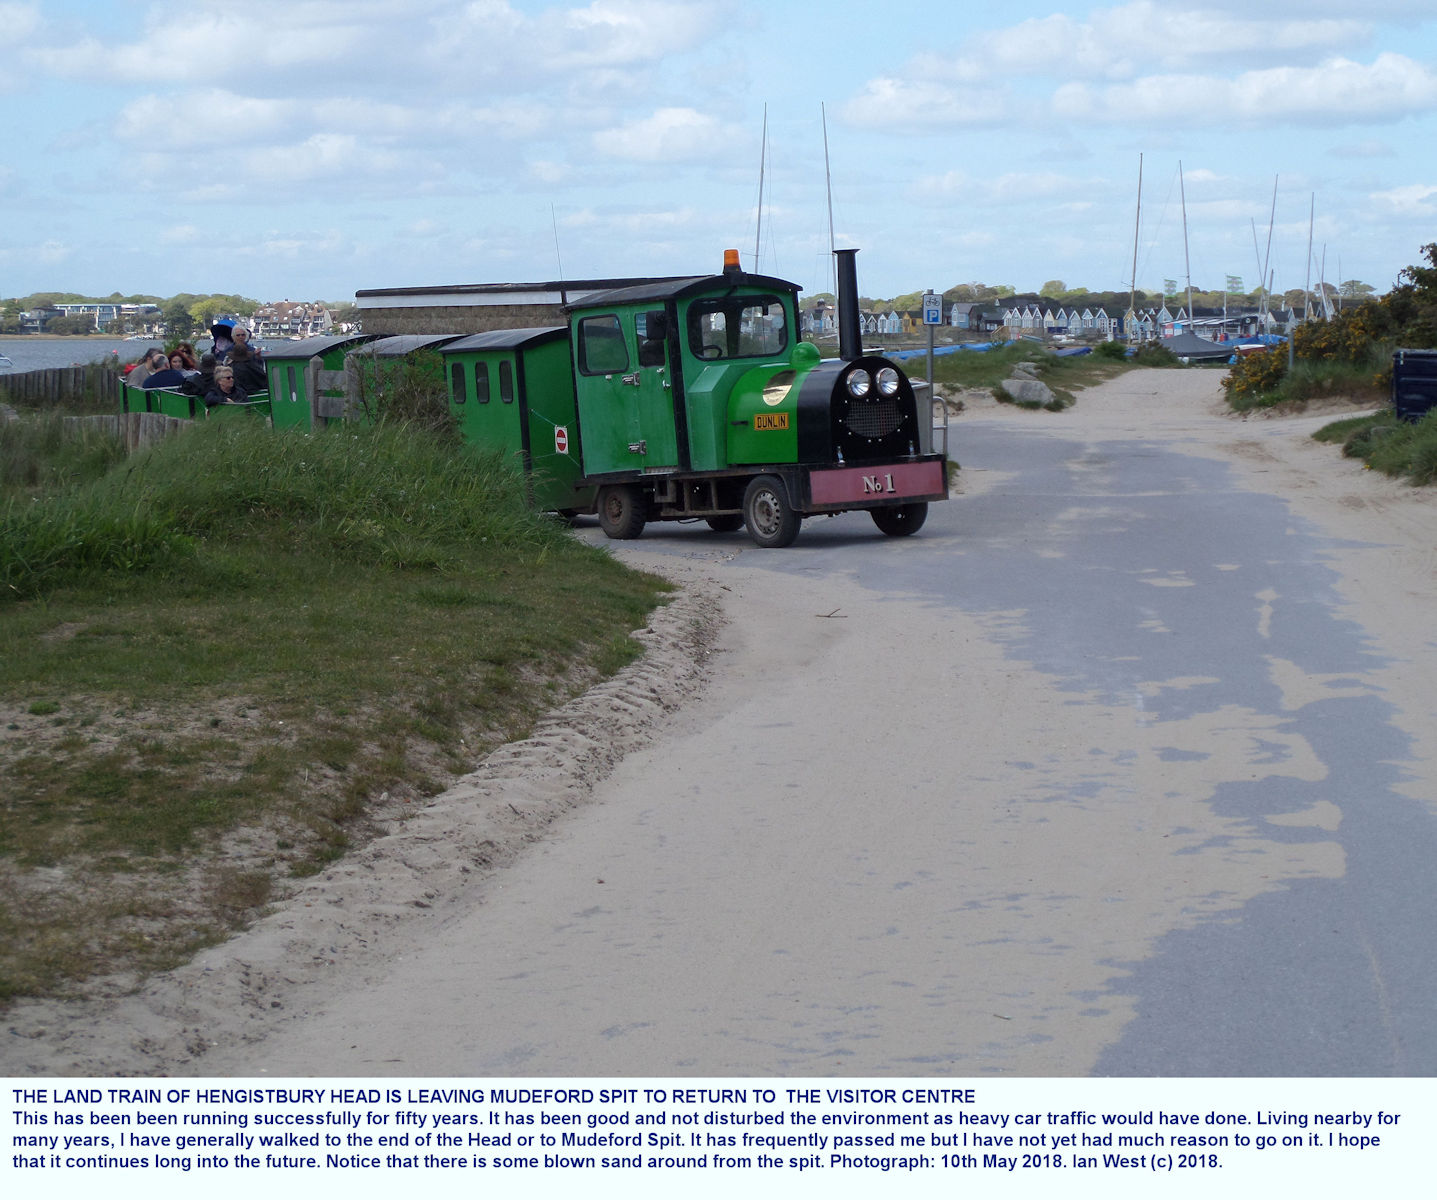 The road train at Hengistbury Head runs between the  Visitor Centre and the landward, Hengistbury end of Mudeford Spit, and has done so for about fifty years